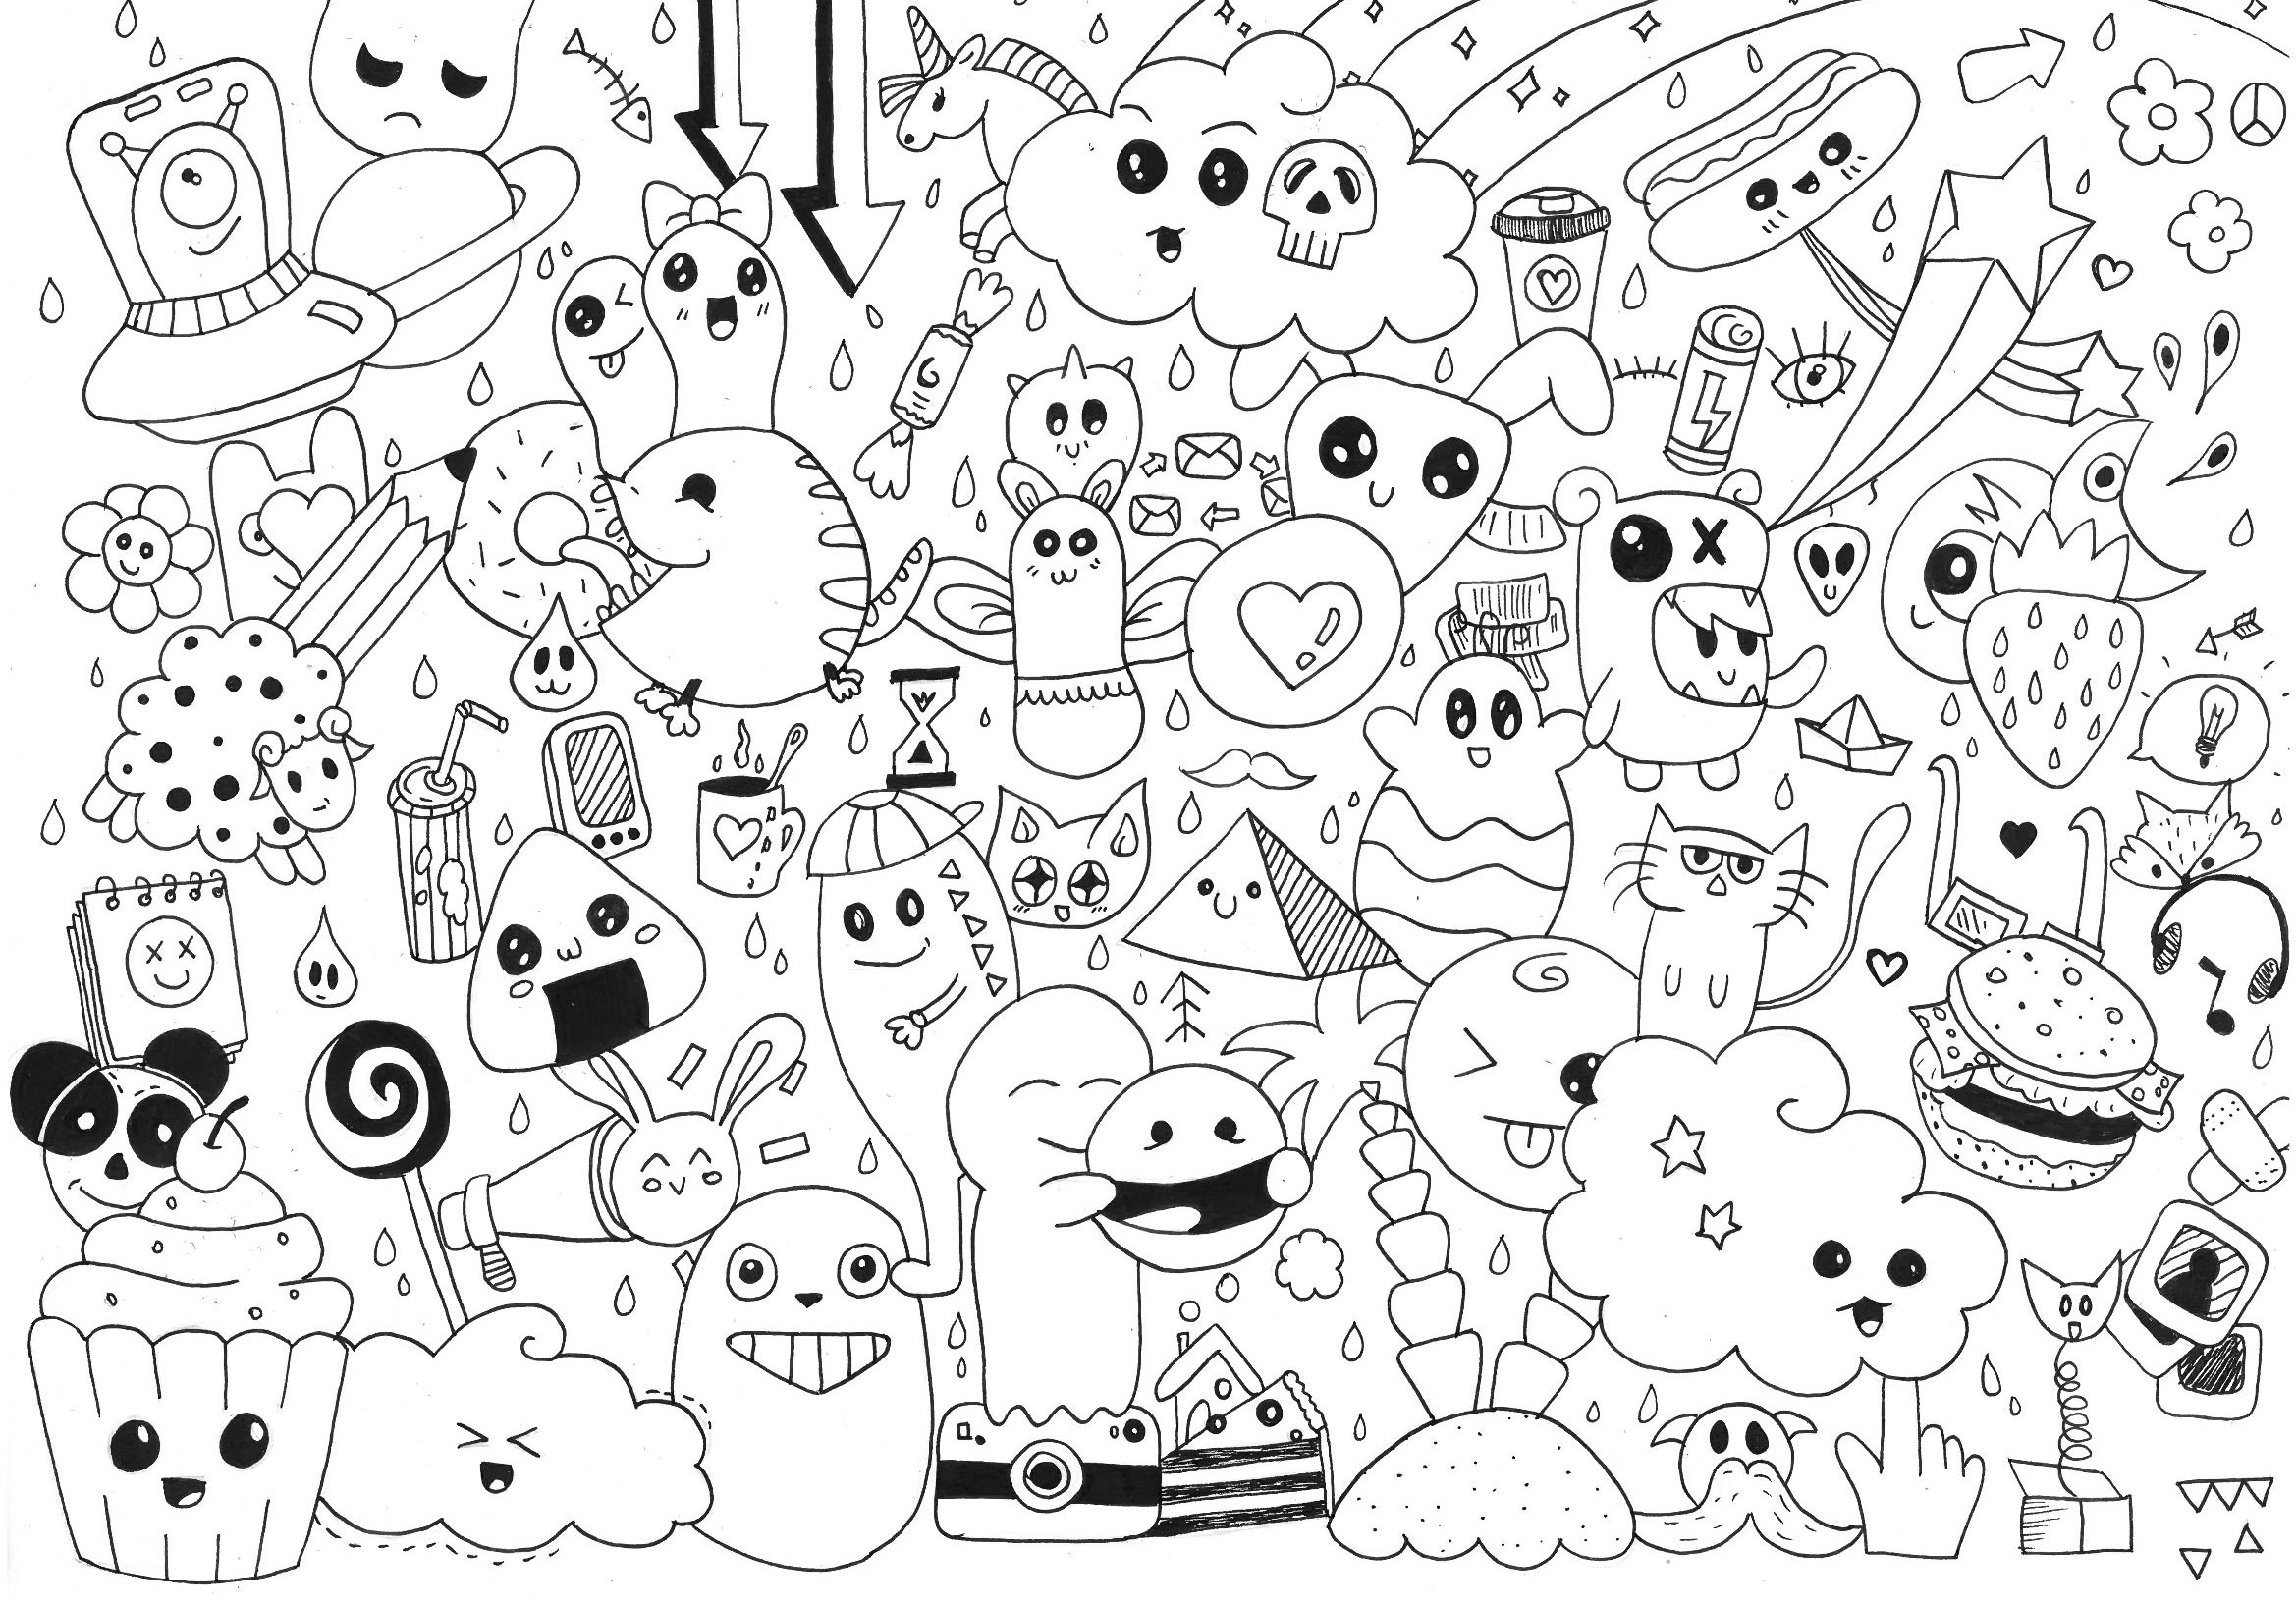 Doodle Art To Print For Free - Doodle Art Kids Coloring Pages - Free Printable Doodle Art Coloring Pages